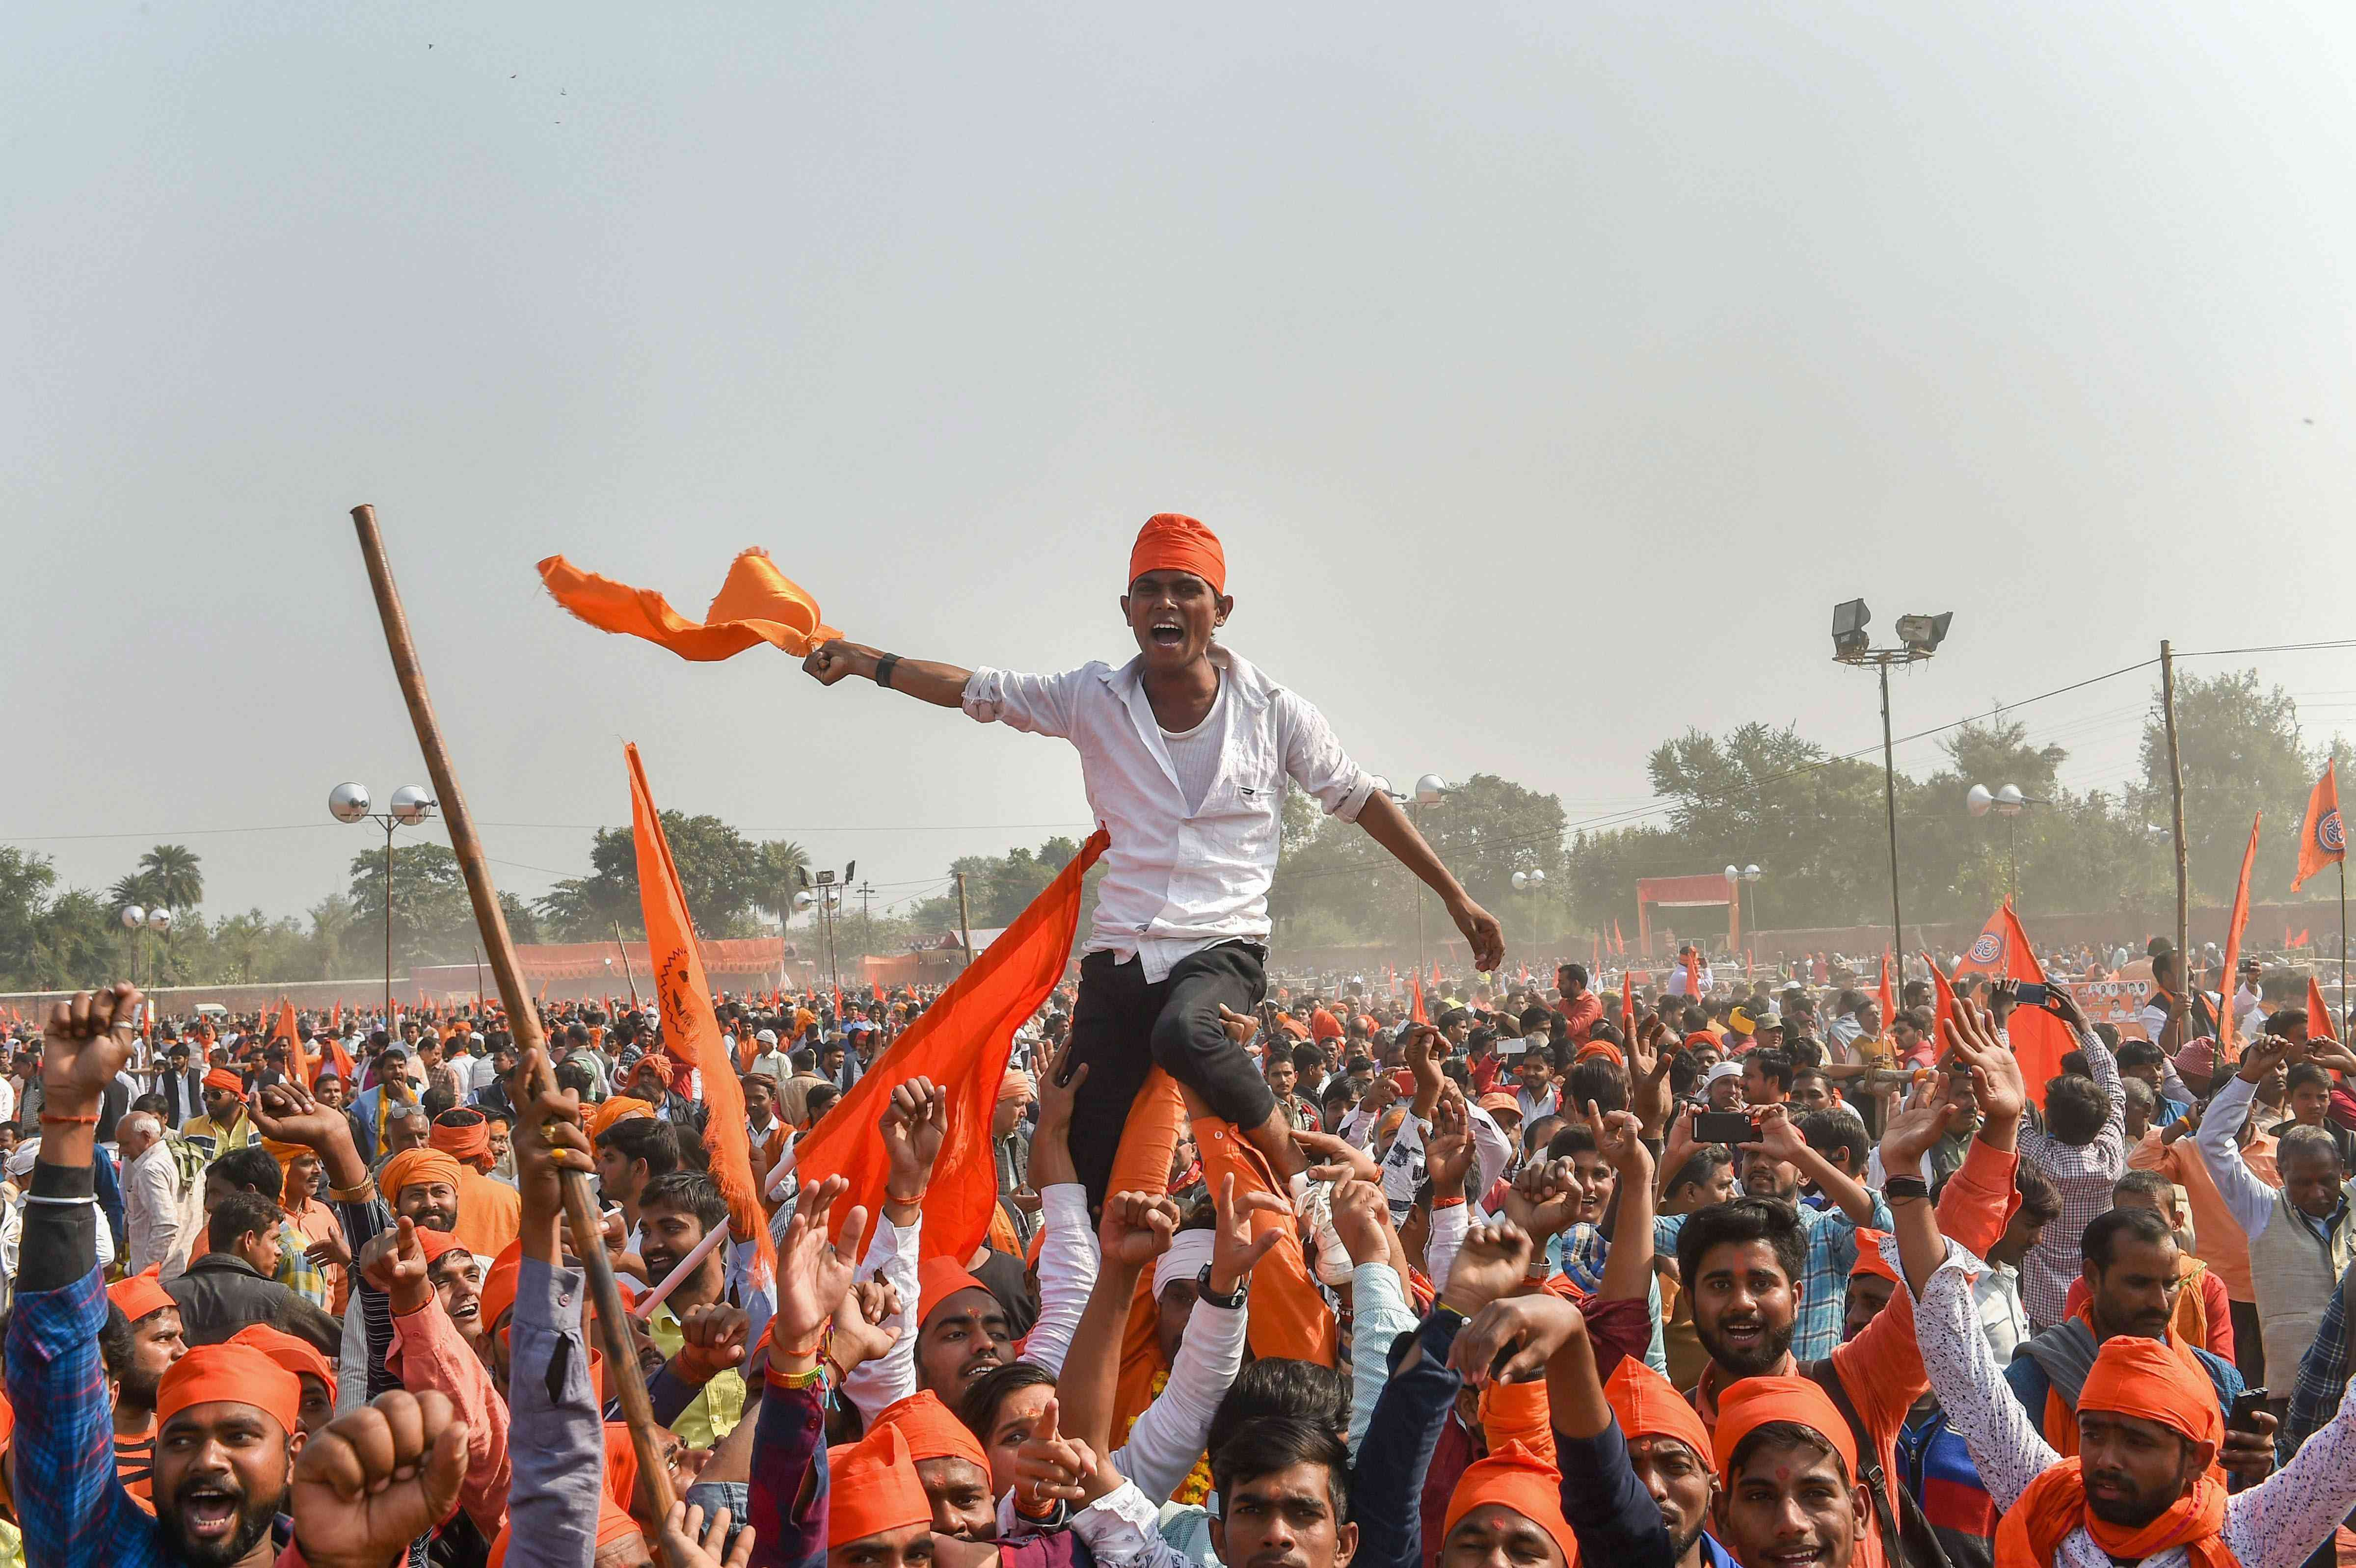 Supporters participate in the VHP's Dharma Sabha rally in Ayodhya on Sunday. (Image credit: PTI)